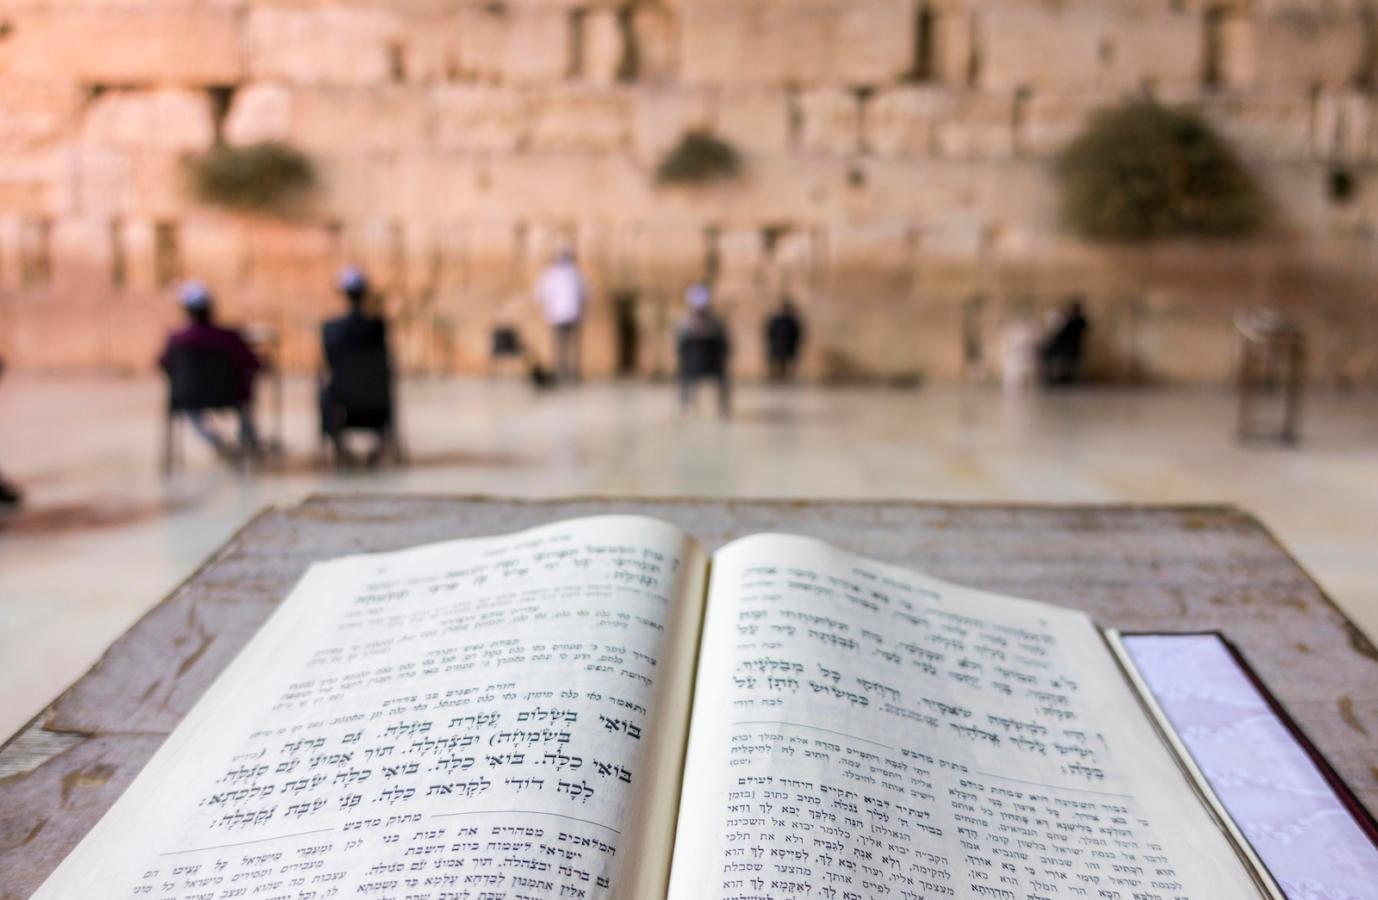 How Can I Pray If I Don't Believe The Words? | My Jewish Learning